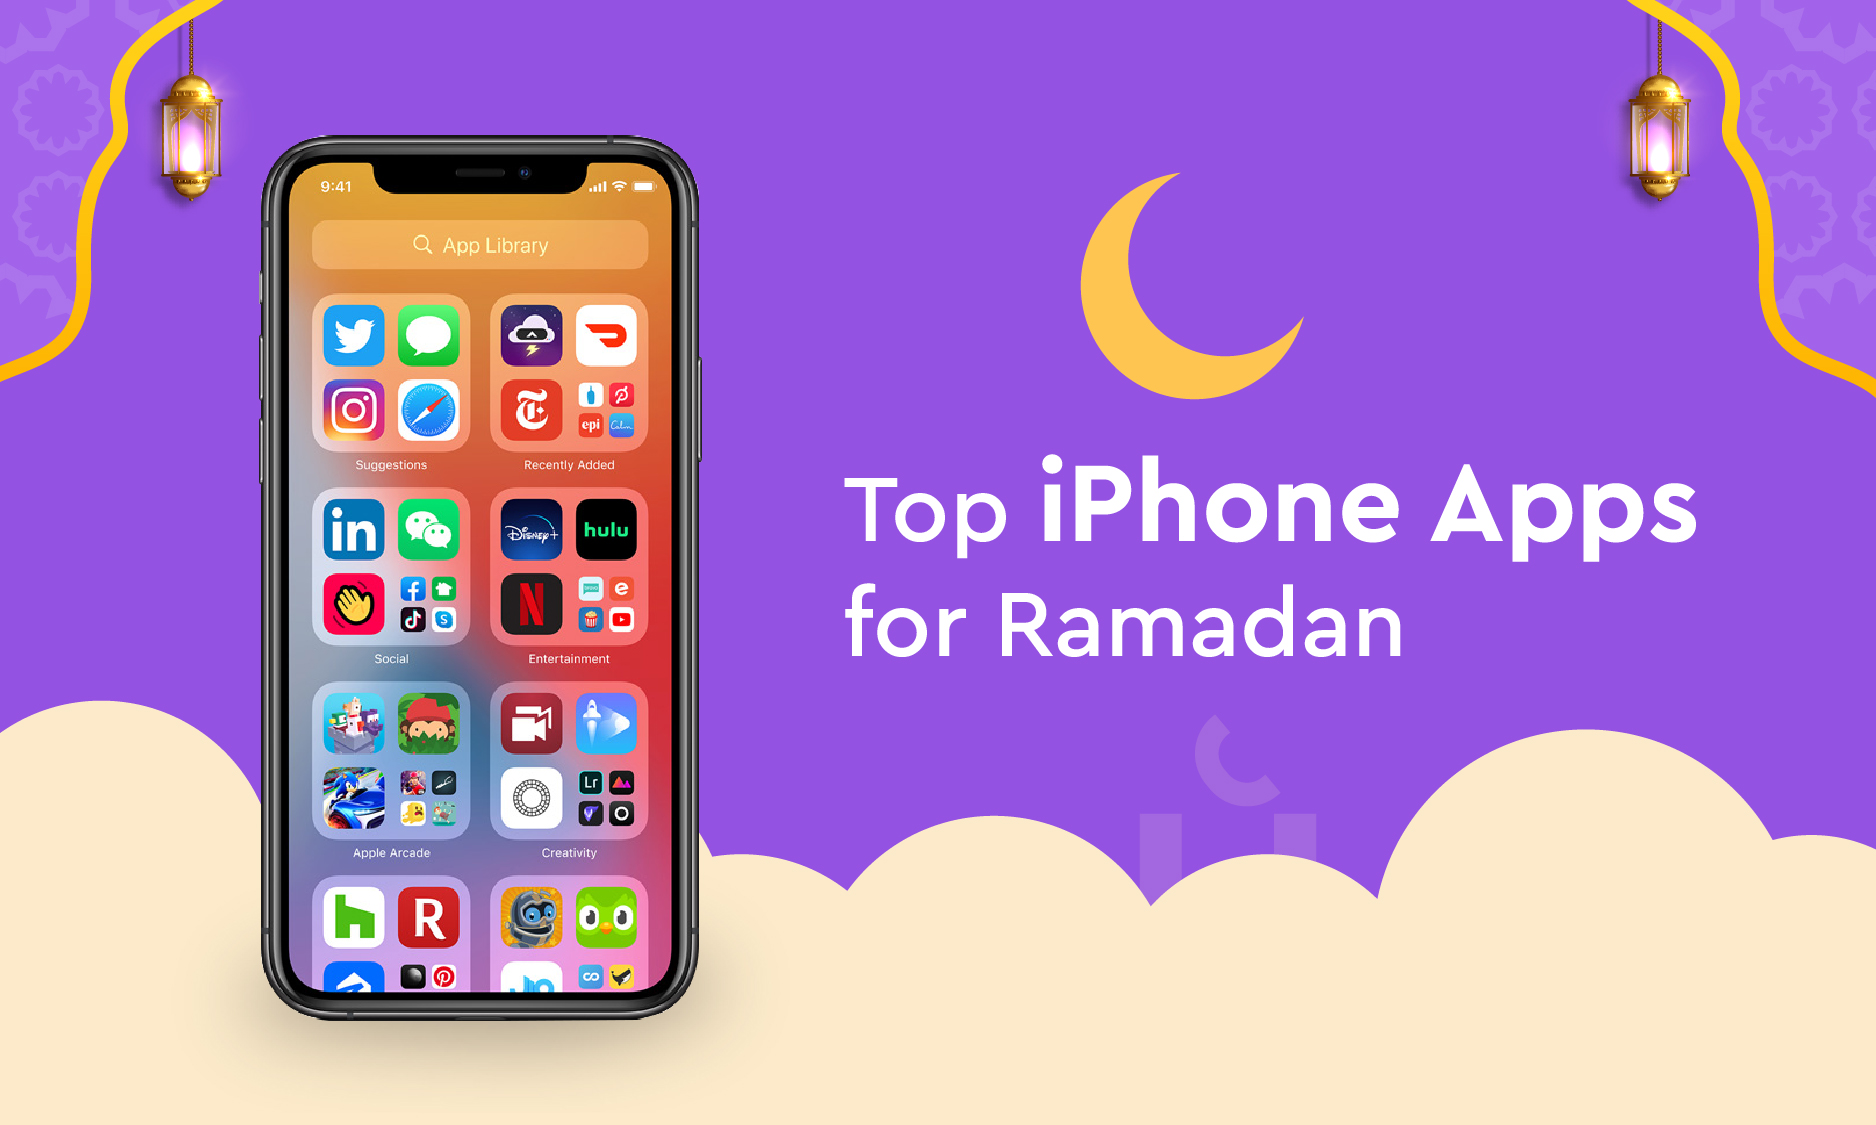 Top iPhone Apps to use during Ramadan